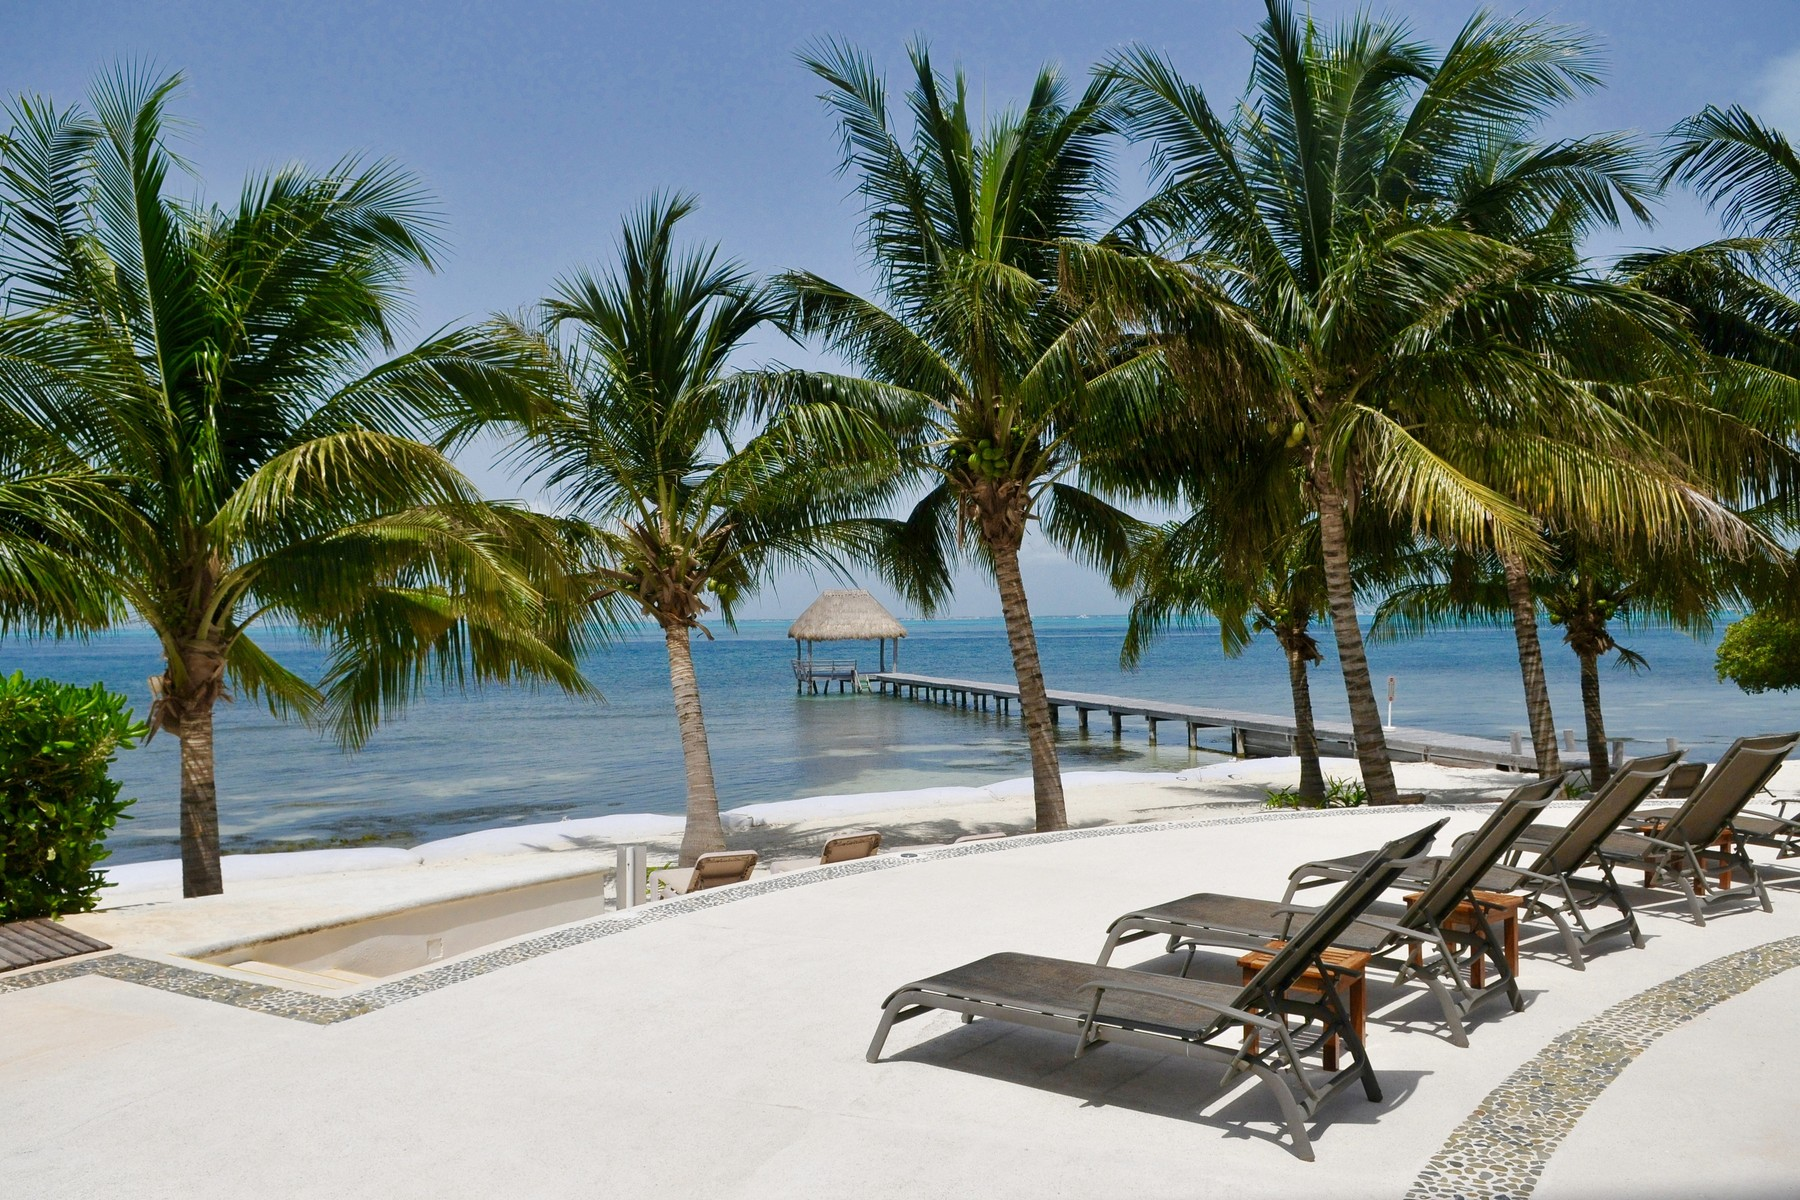 Additional photo for property listing at CASA ELIZABETH: CARIBBEAN ISLAND LIVING Isla Mujeres, Quintana Roo Mexico